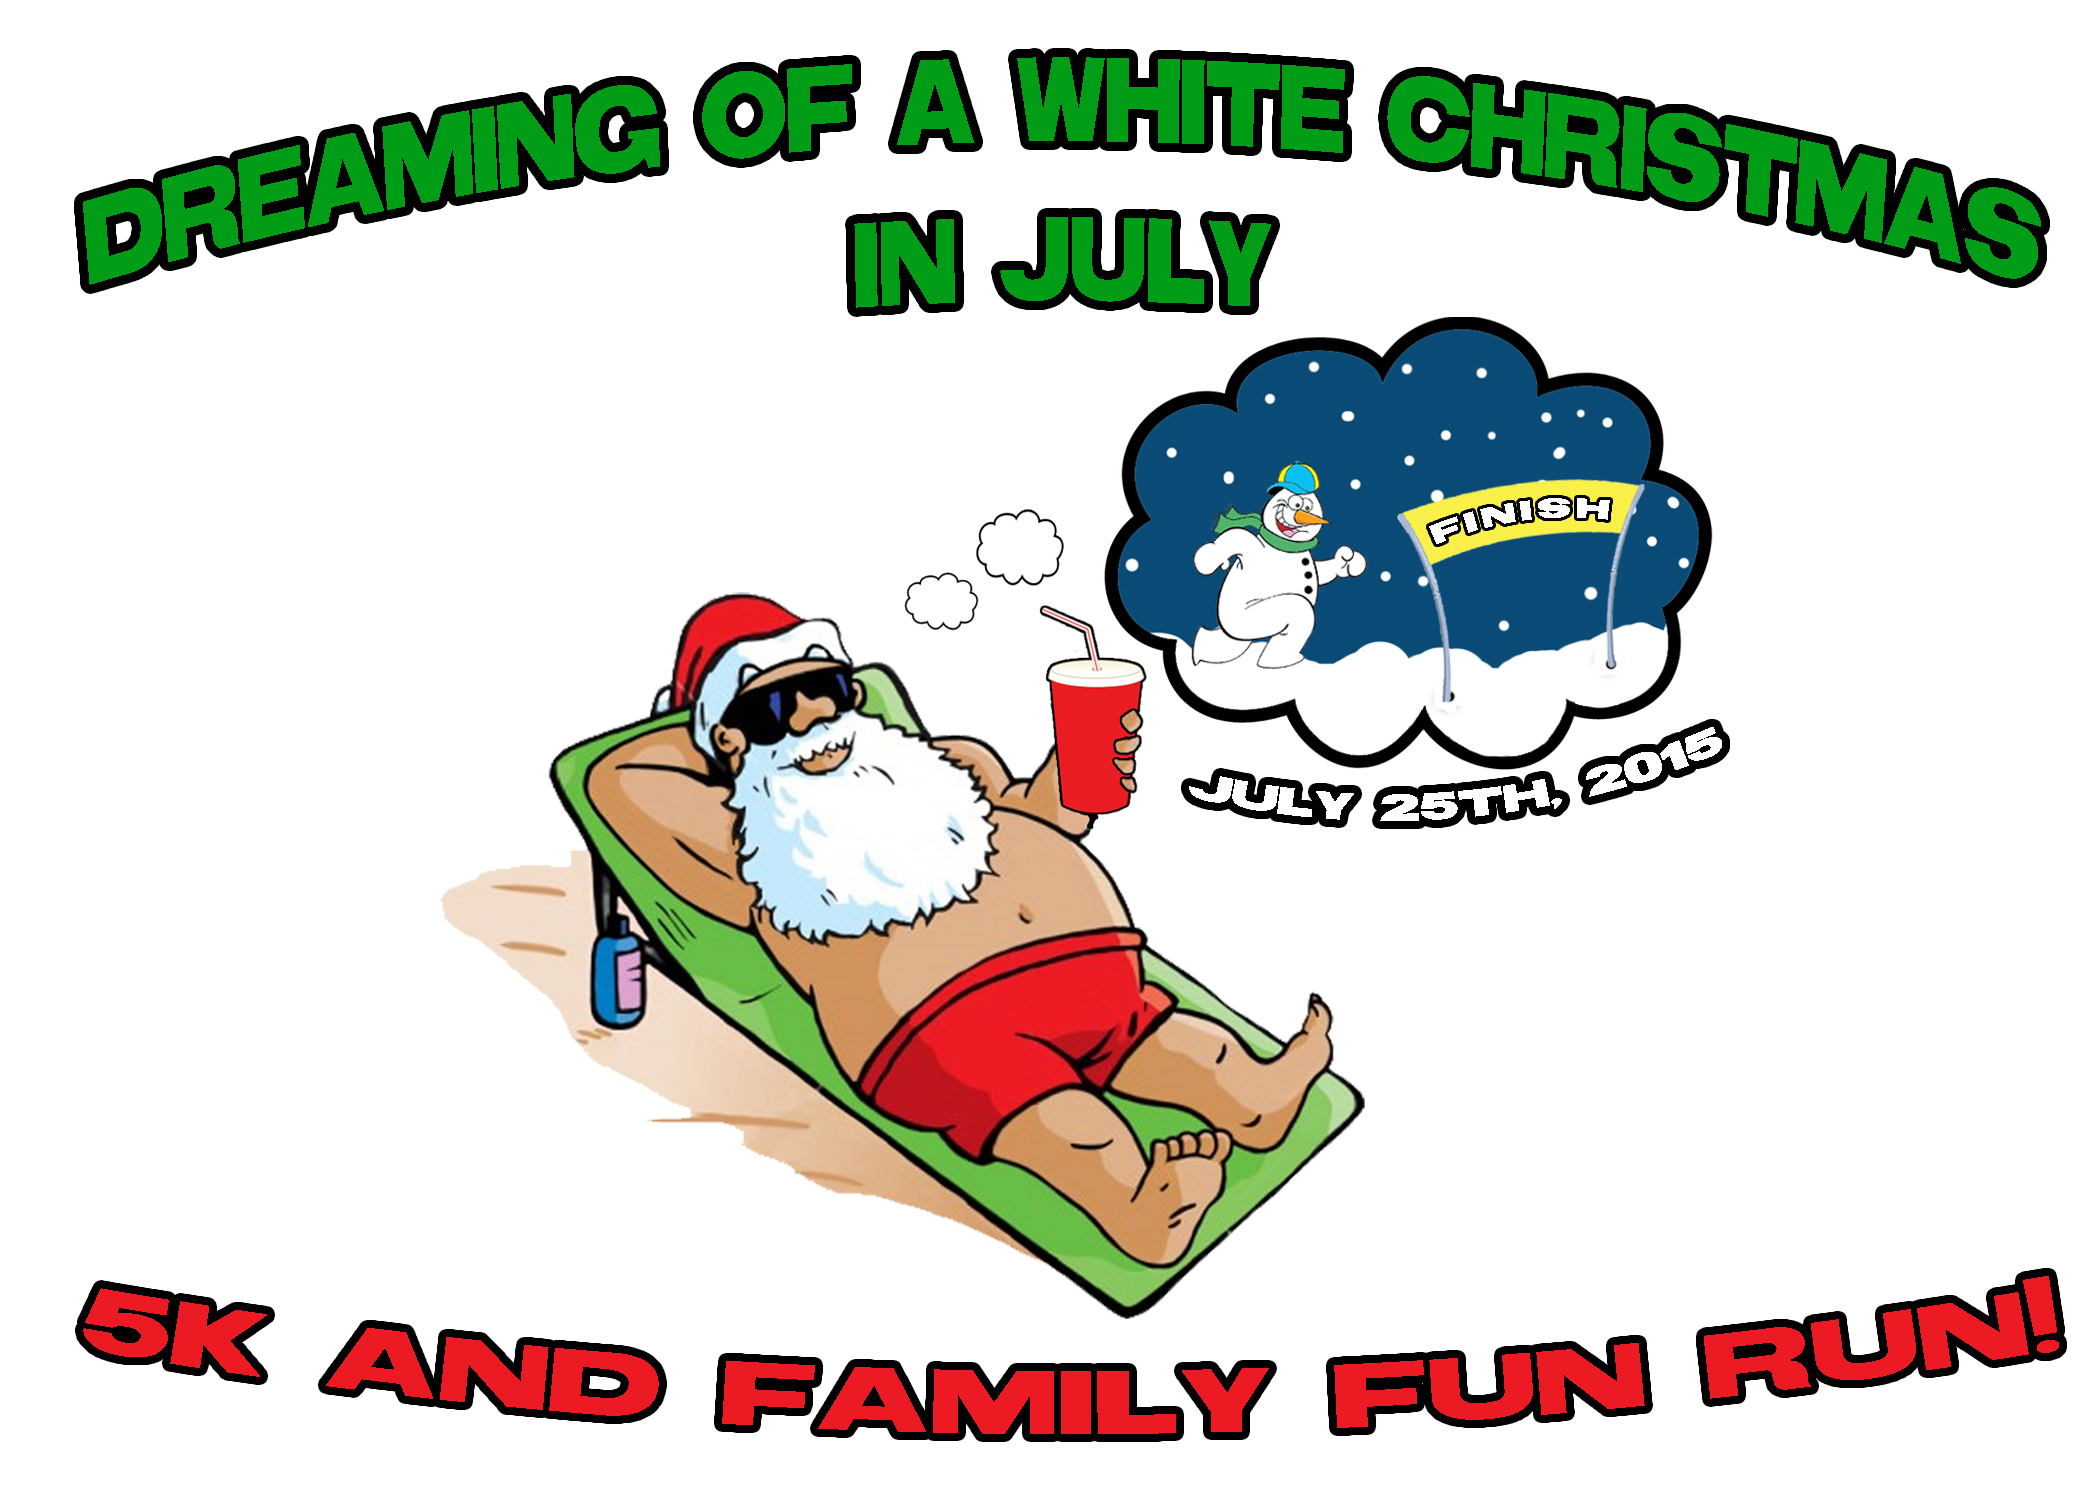 Fun Christmas In July Ideas.Dreaming Of A White Christmas In July 5k And Fun Run Big